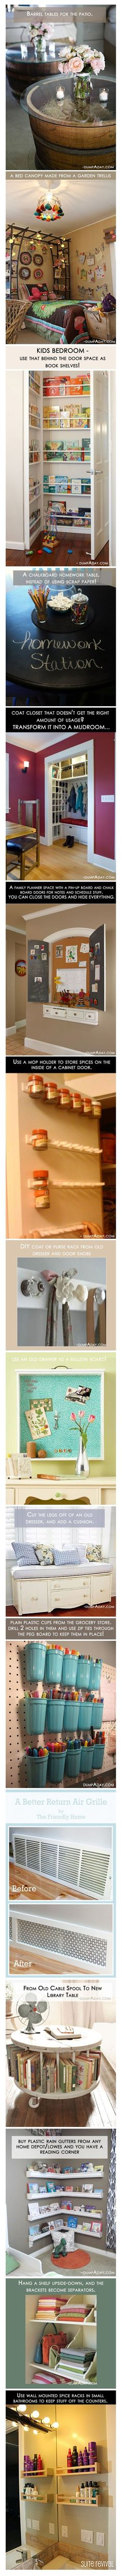 Best Pins - 16 Amazing Do It Yourself Home Ideas |